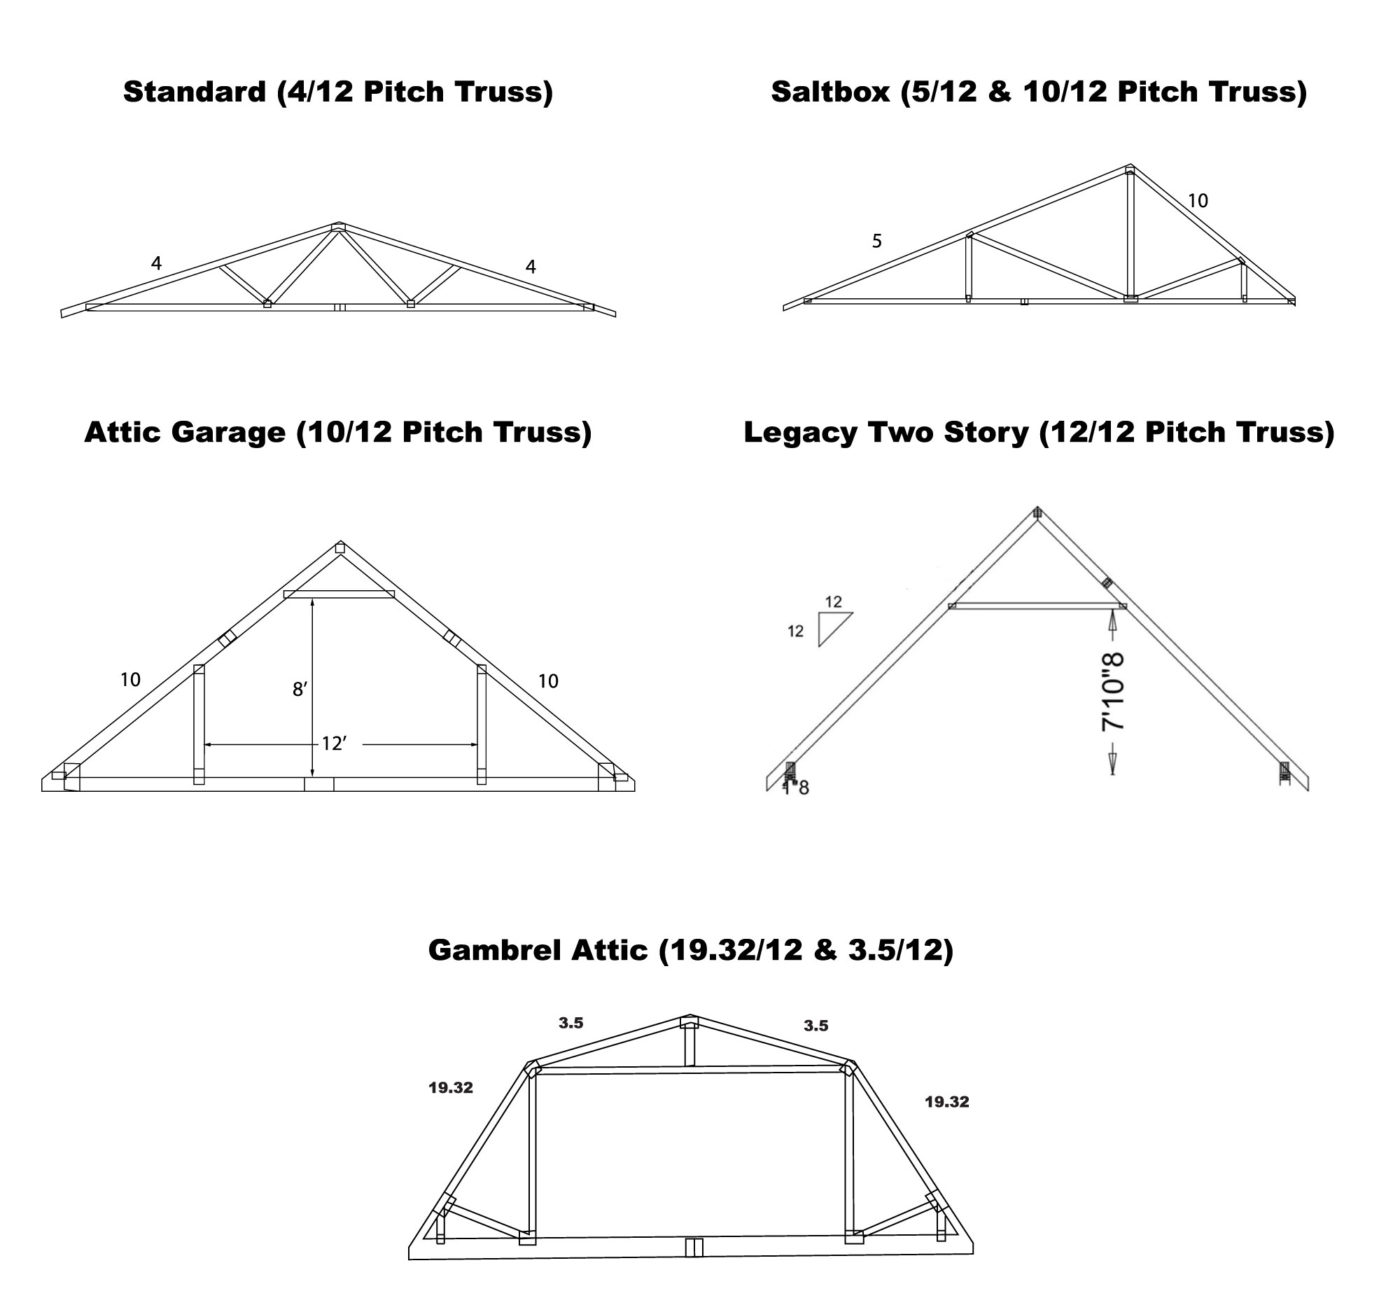 trusses to show available space in attics and second floor of 20x24 garages